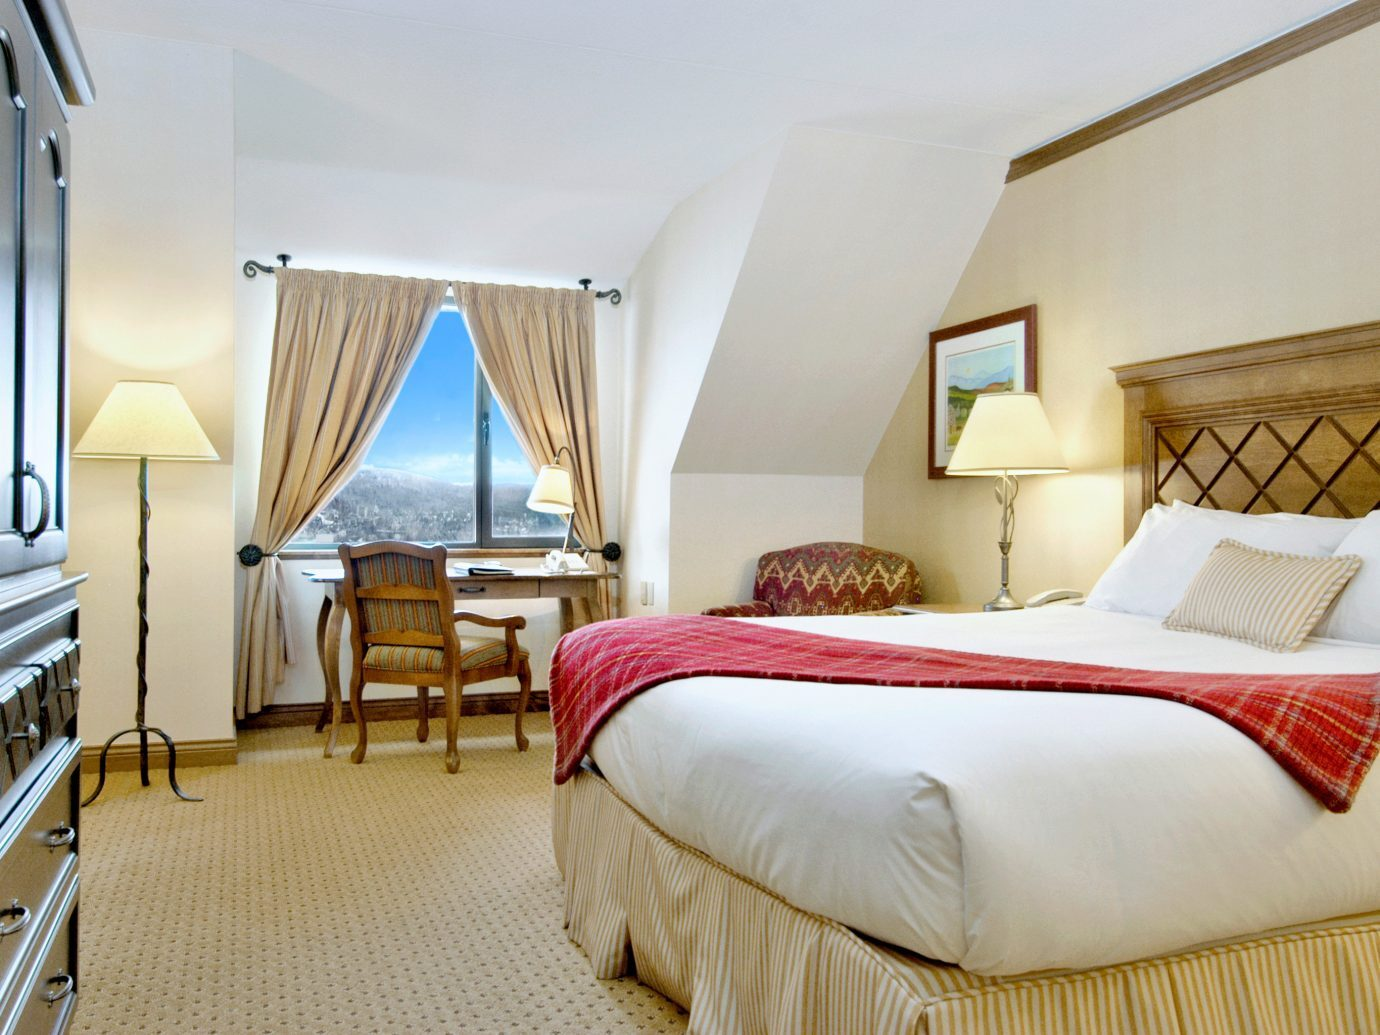 Bedroom at the Fairmont Tremblant, Mont-Tremblant, QC